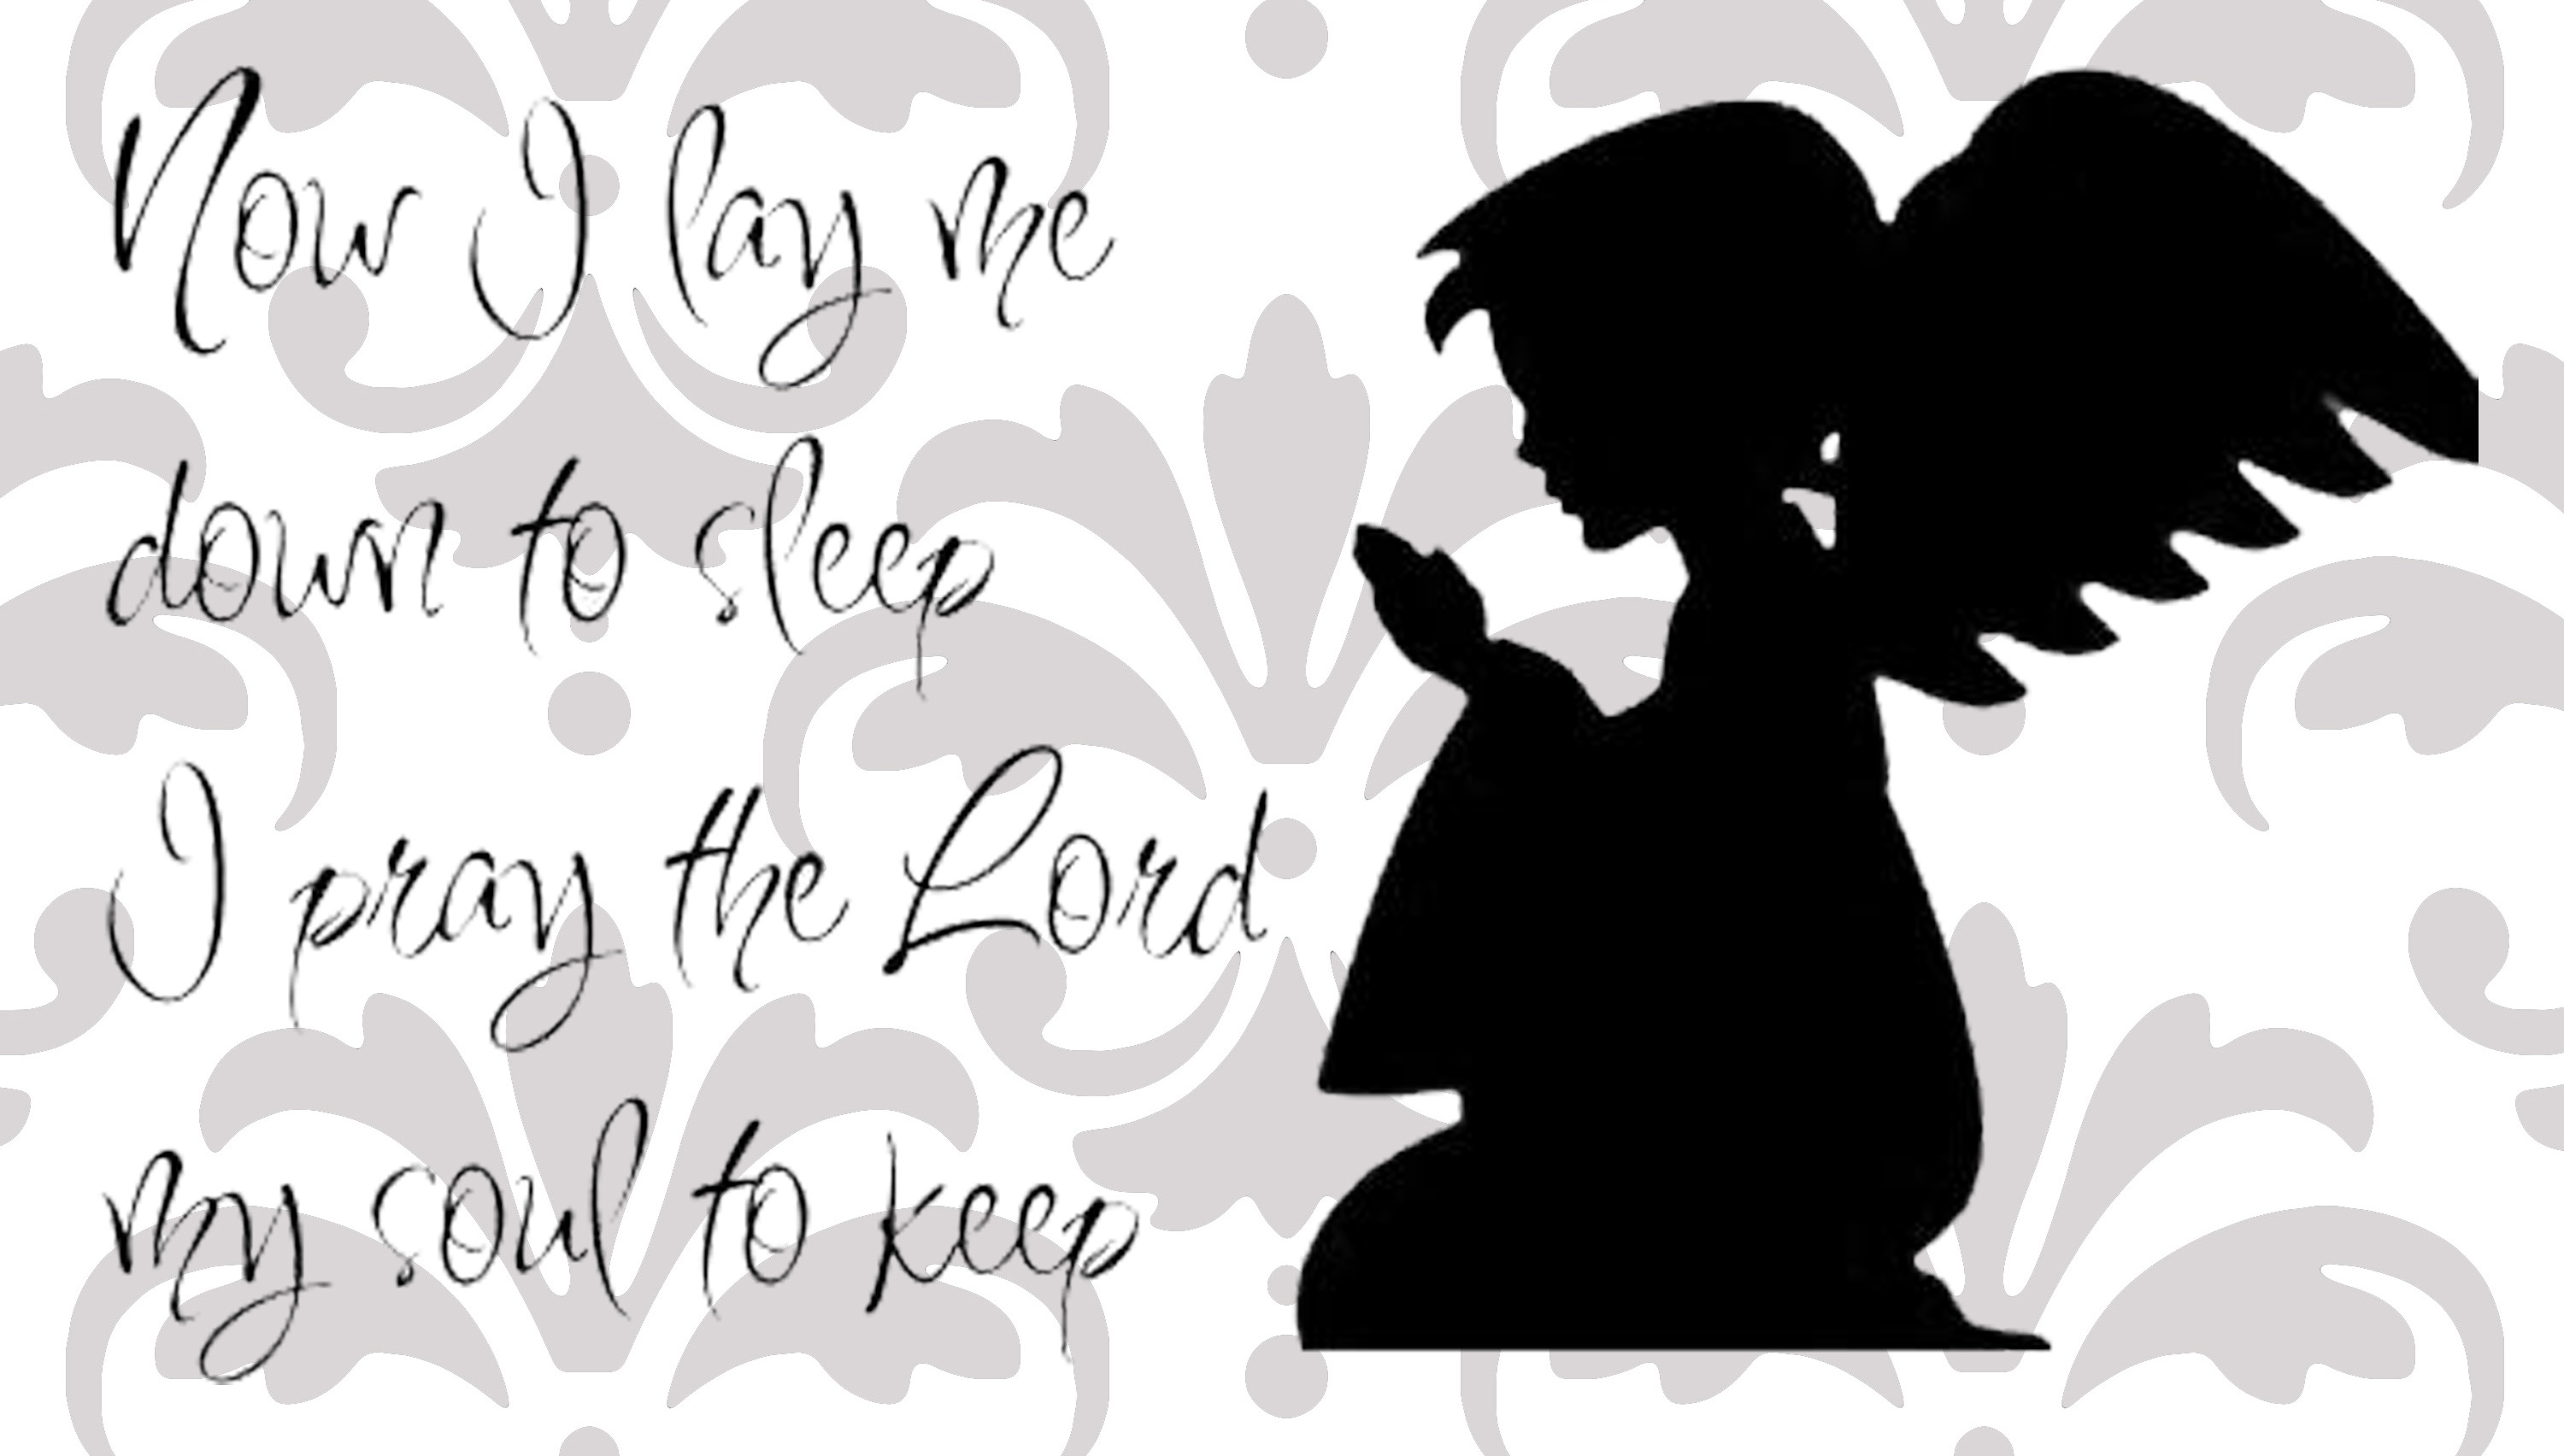 Now i lay me down to sleep wall decal - Now I Lay Me Down To Sleep Children S Decal Uk Seller